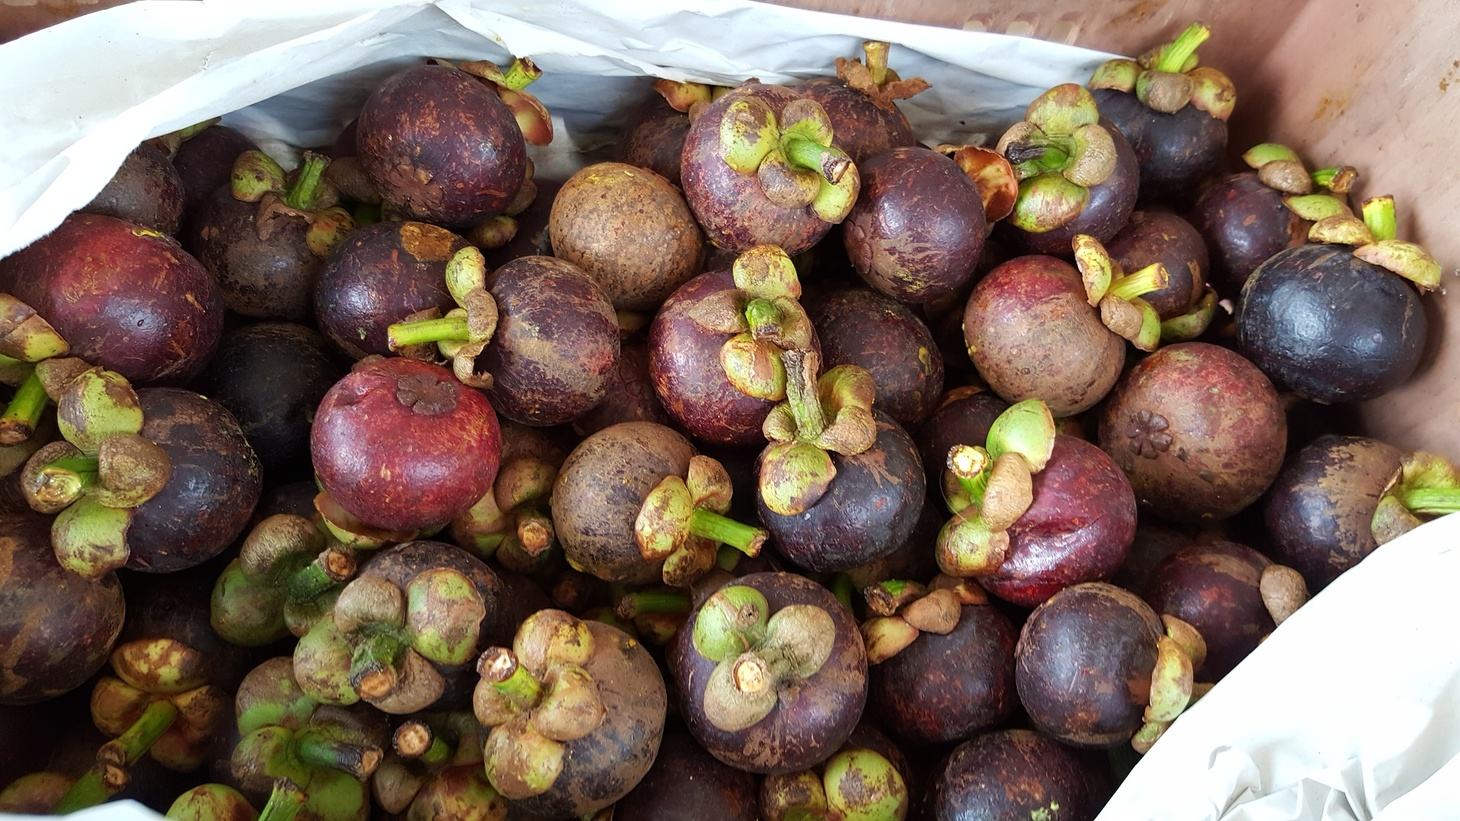 Mangosteen is a popular fruit from Thailand.